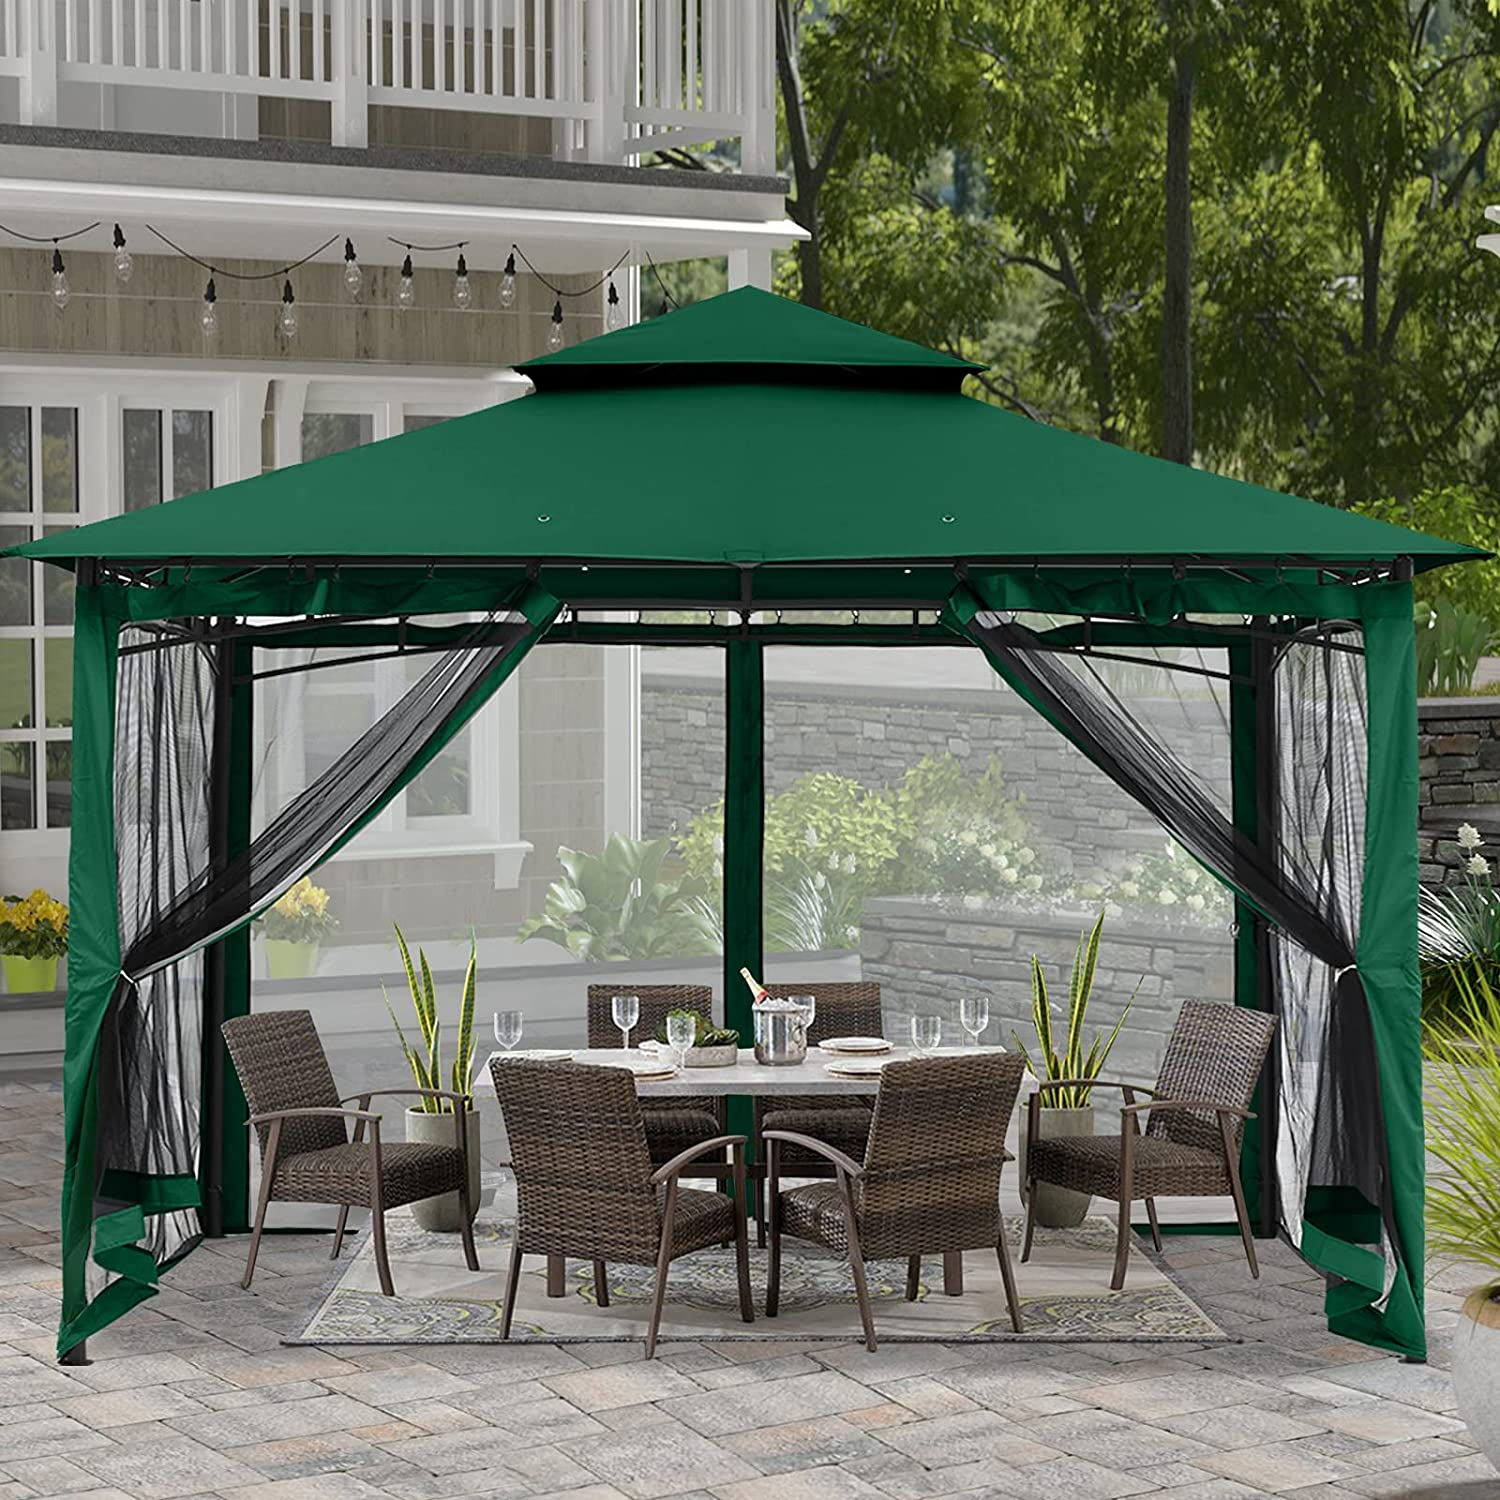 ABCCANOPY 10x12 Patio Gazebos for Patios Double Roof Soft Canopy Garden Gazebo with Mosquito Netting for Shade and Rain, Forest Green